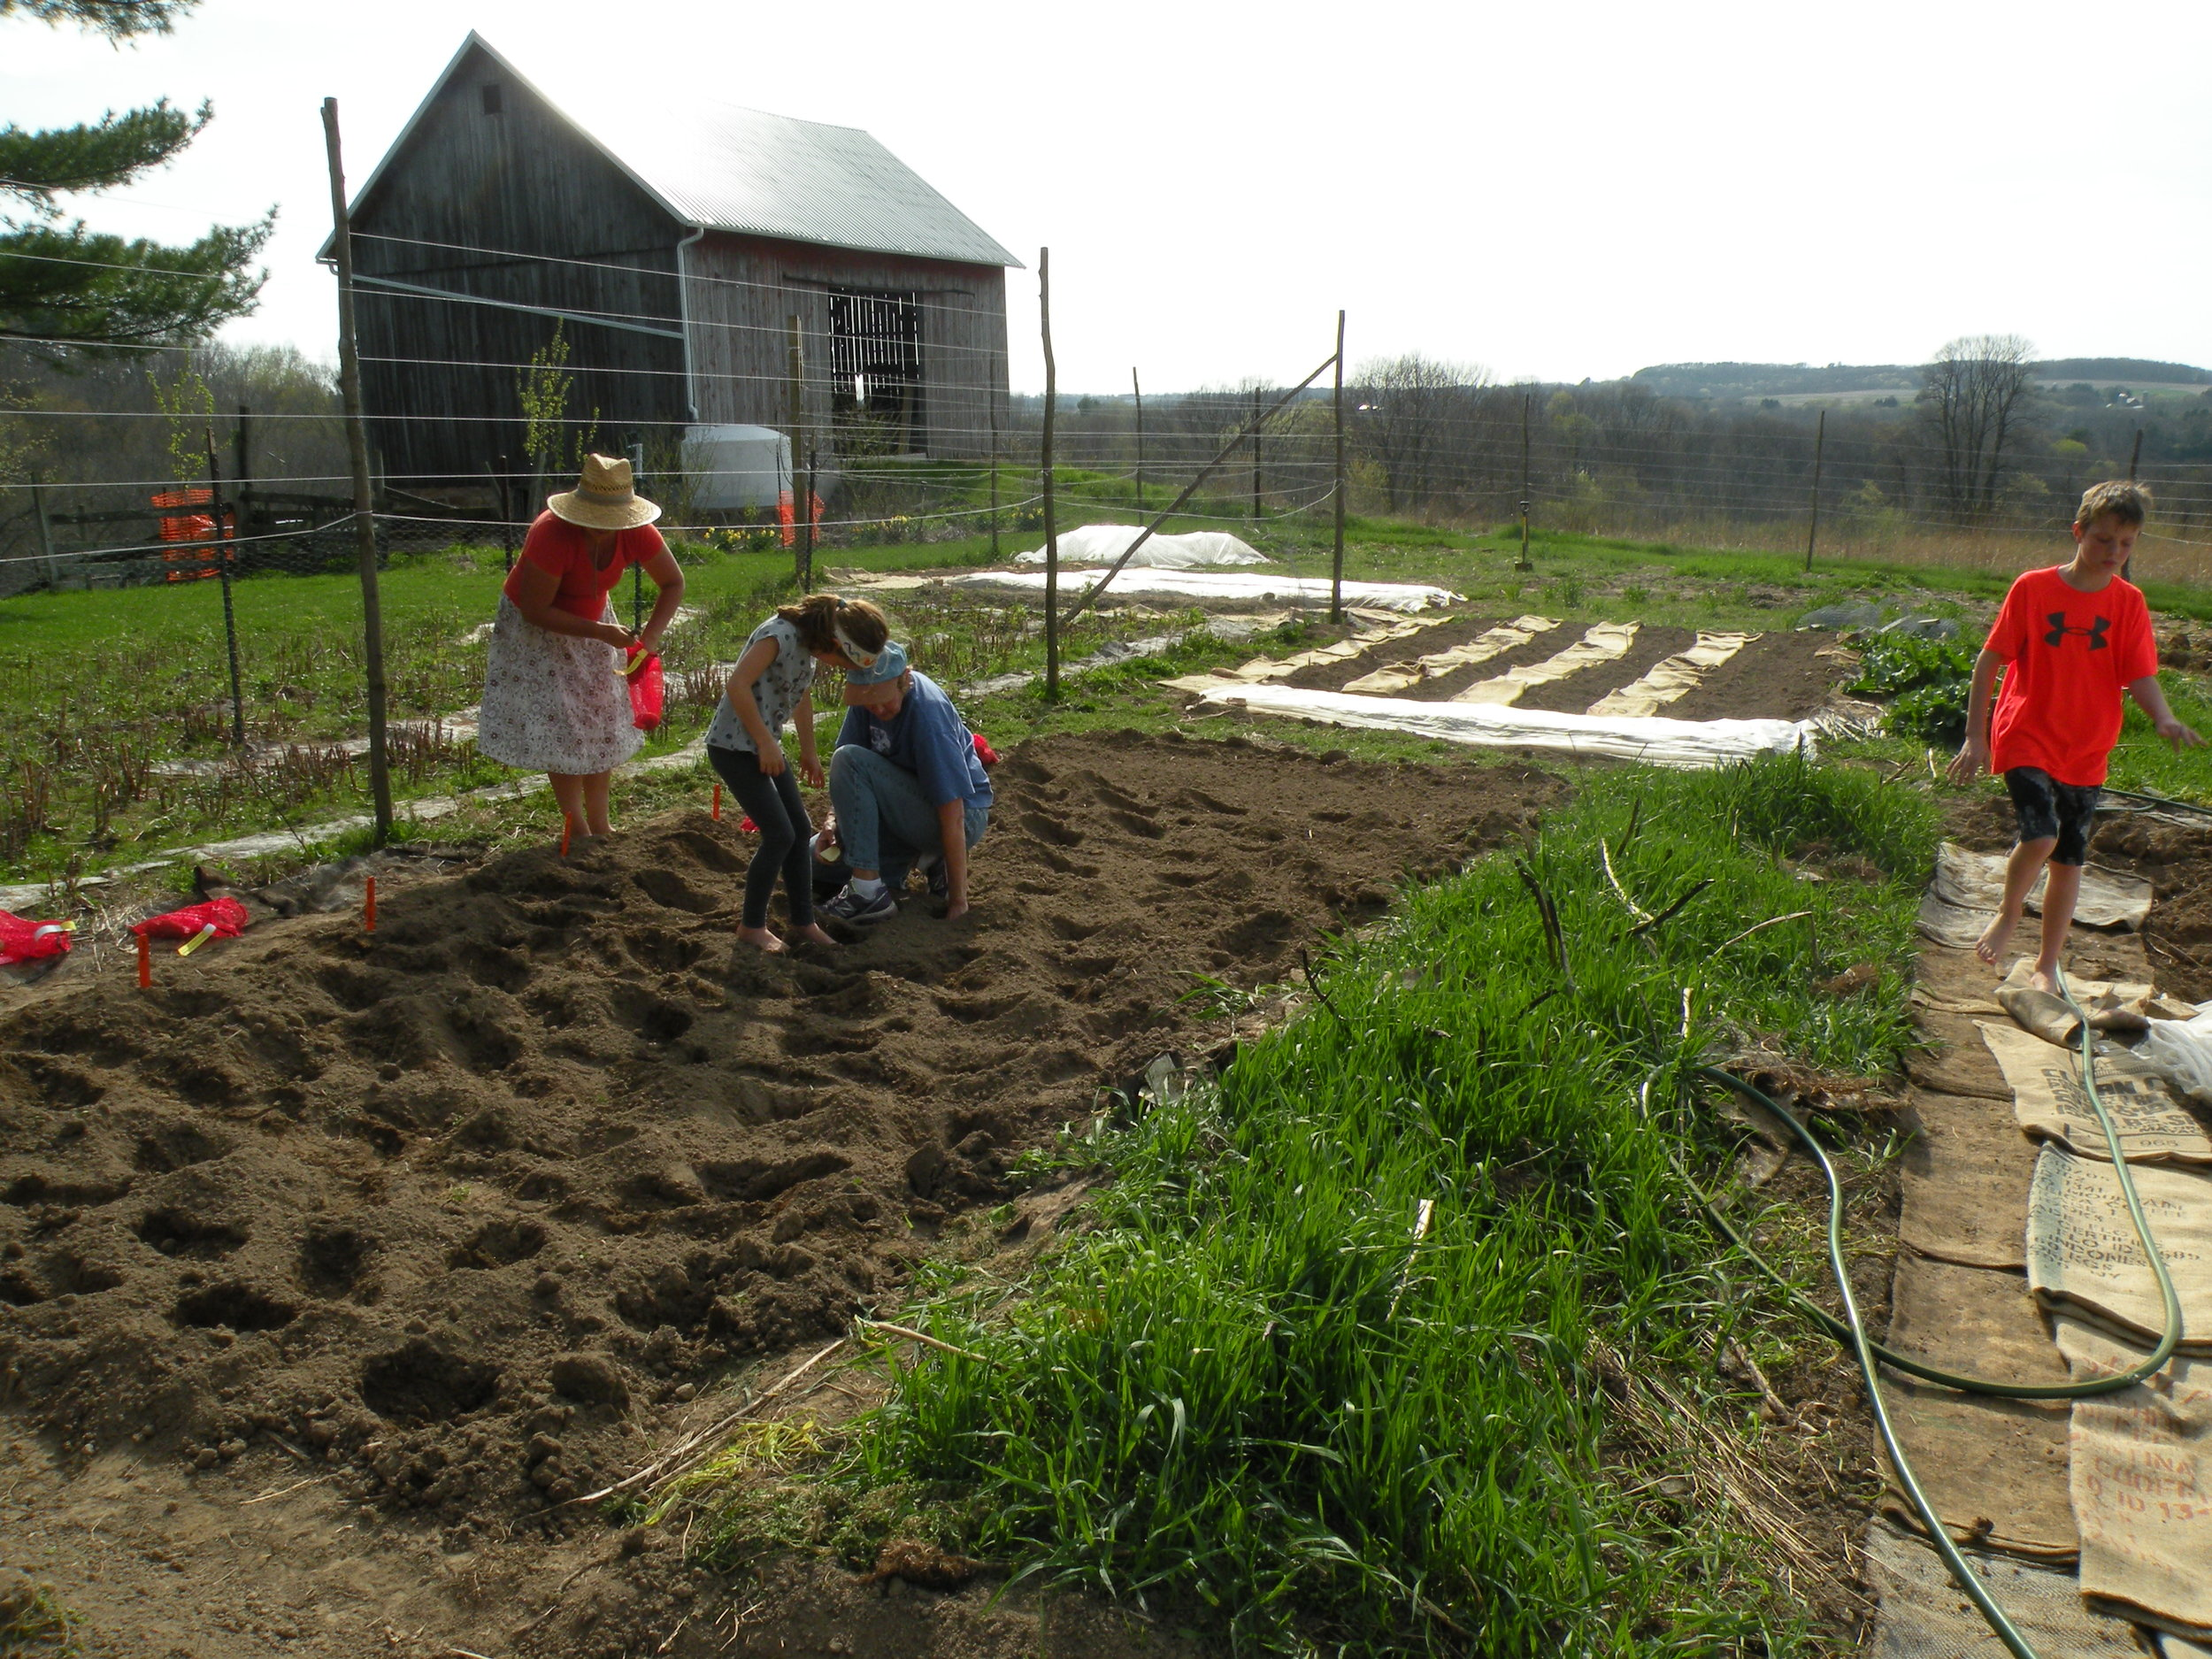 Farm members helping plant potatoes for the season as part of our organic potato variety trial